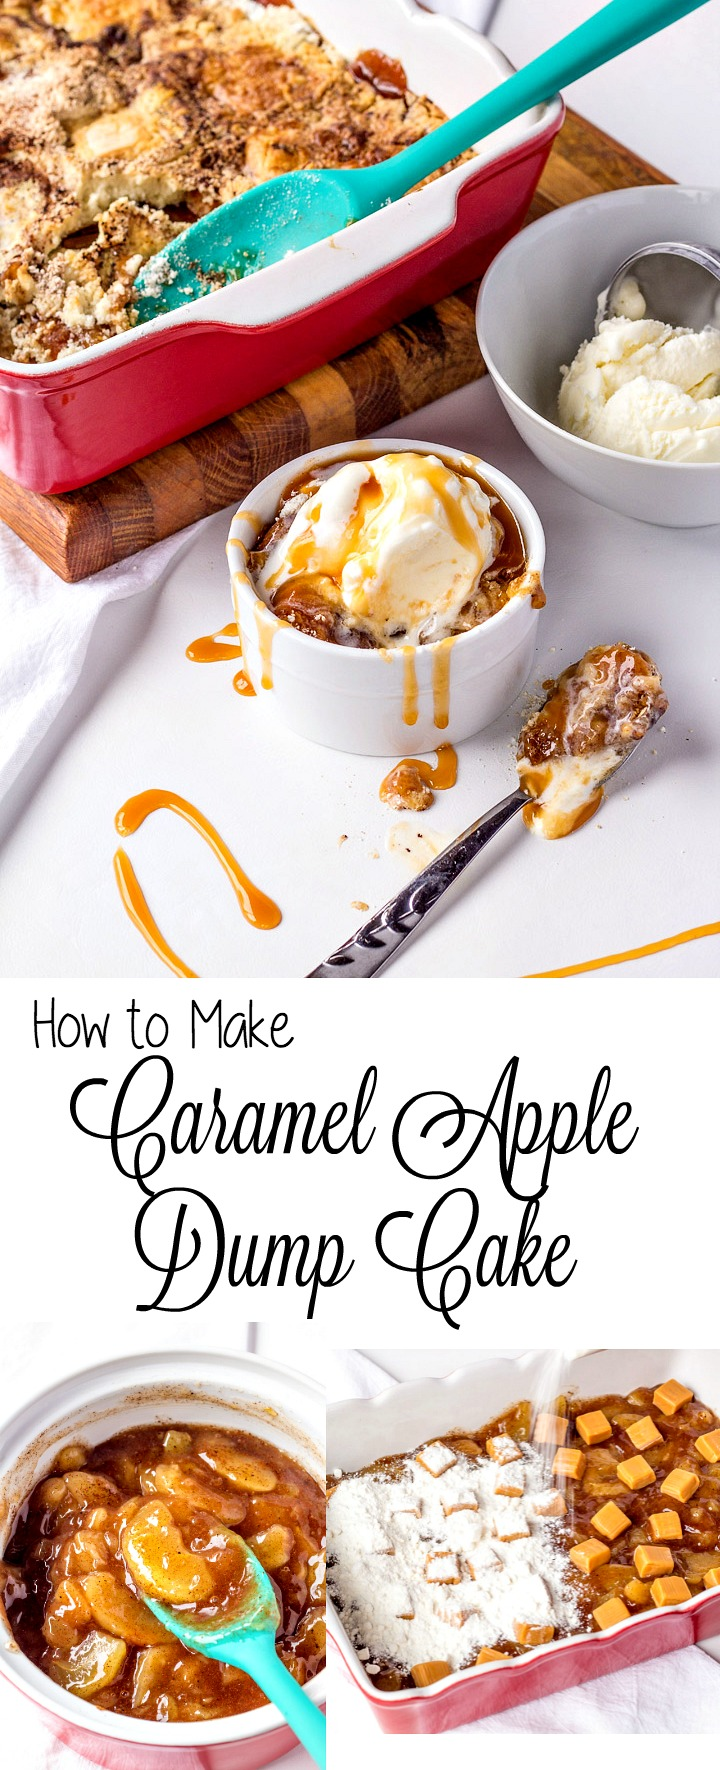 How to Make a Simple Apple Dump Cake with Video | The Bearfoot Baker